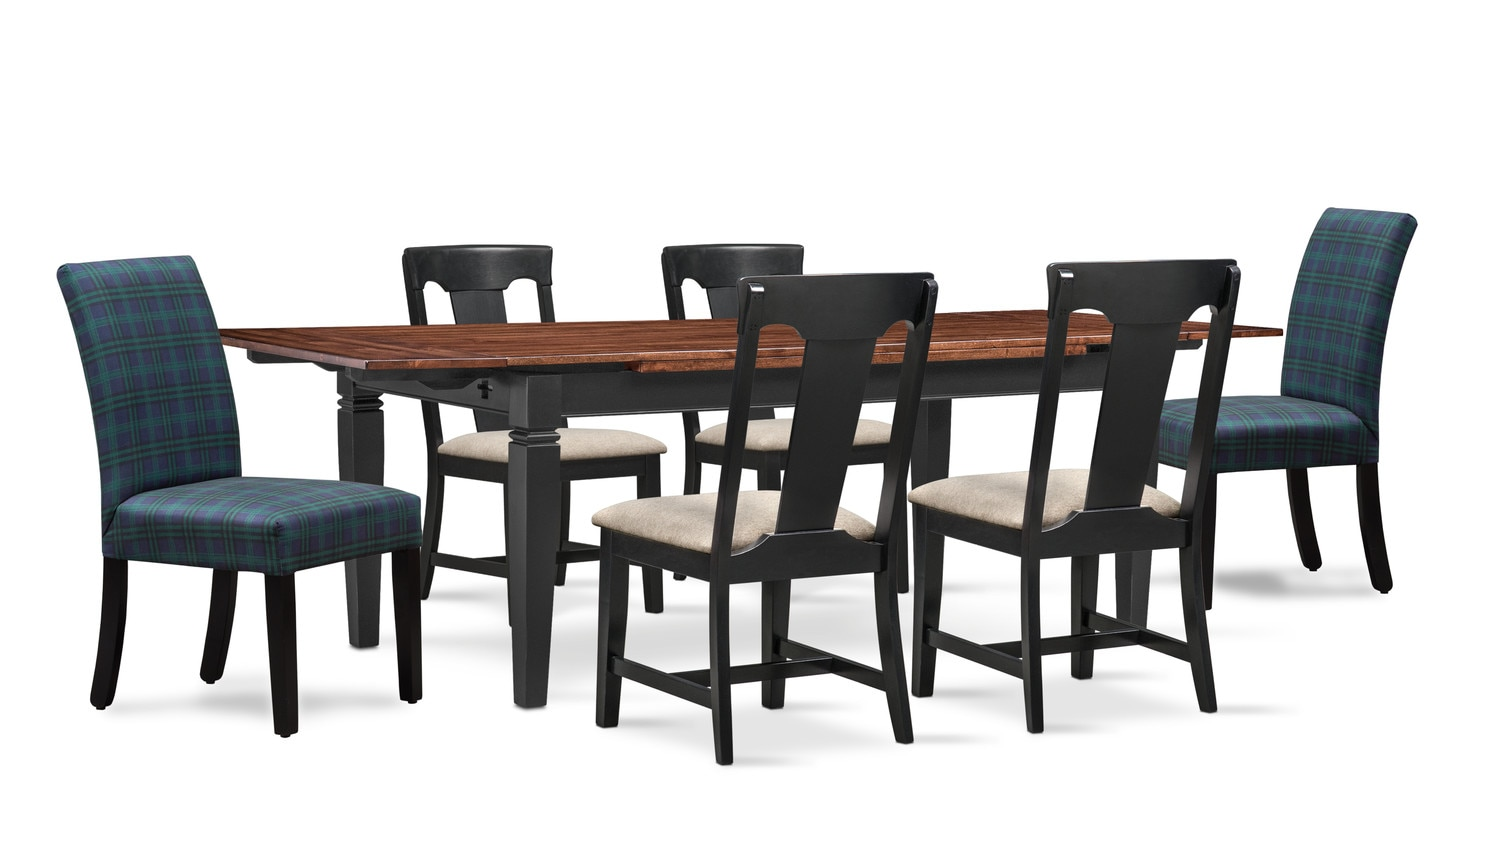 Adler Dining Table, 4 Side Chairs, and 2 Upholstered Side ...